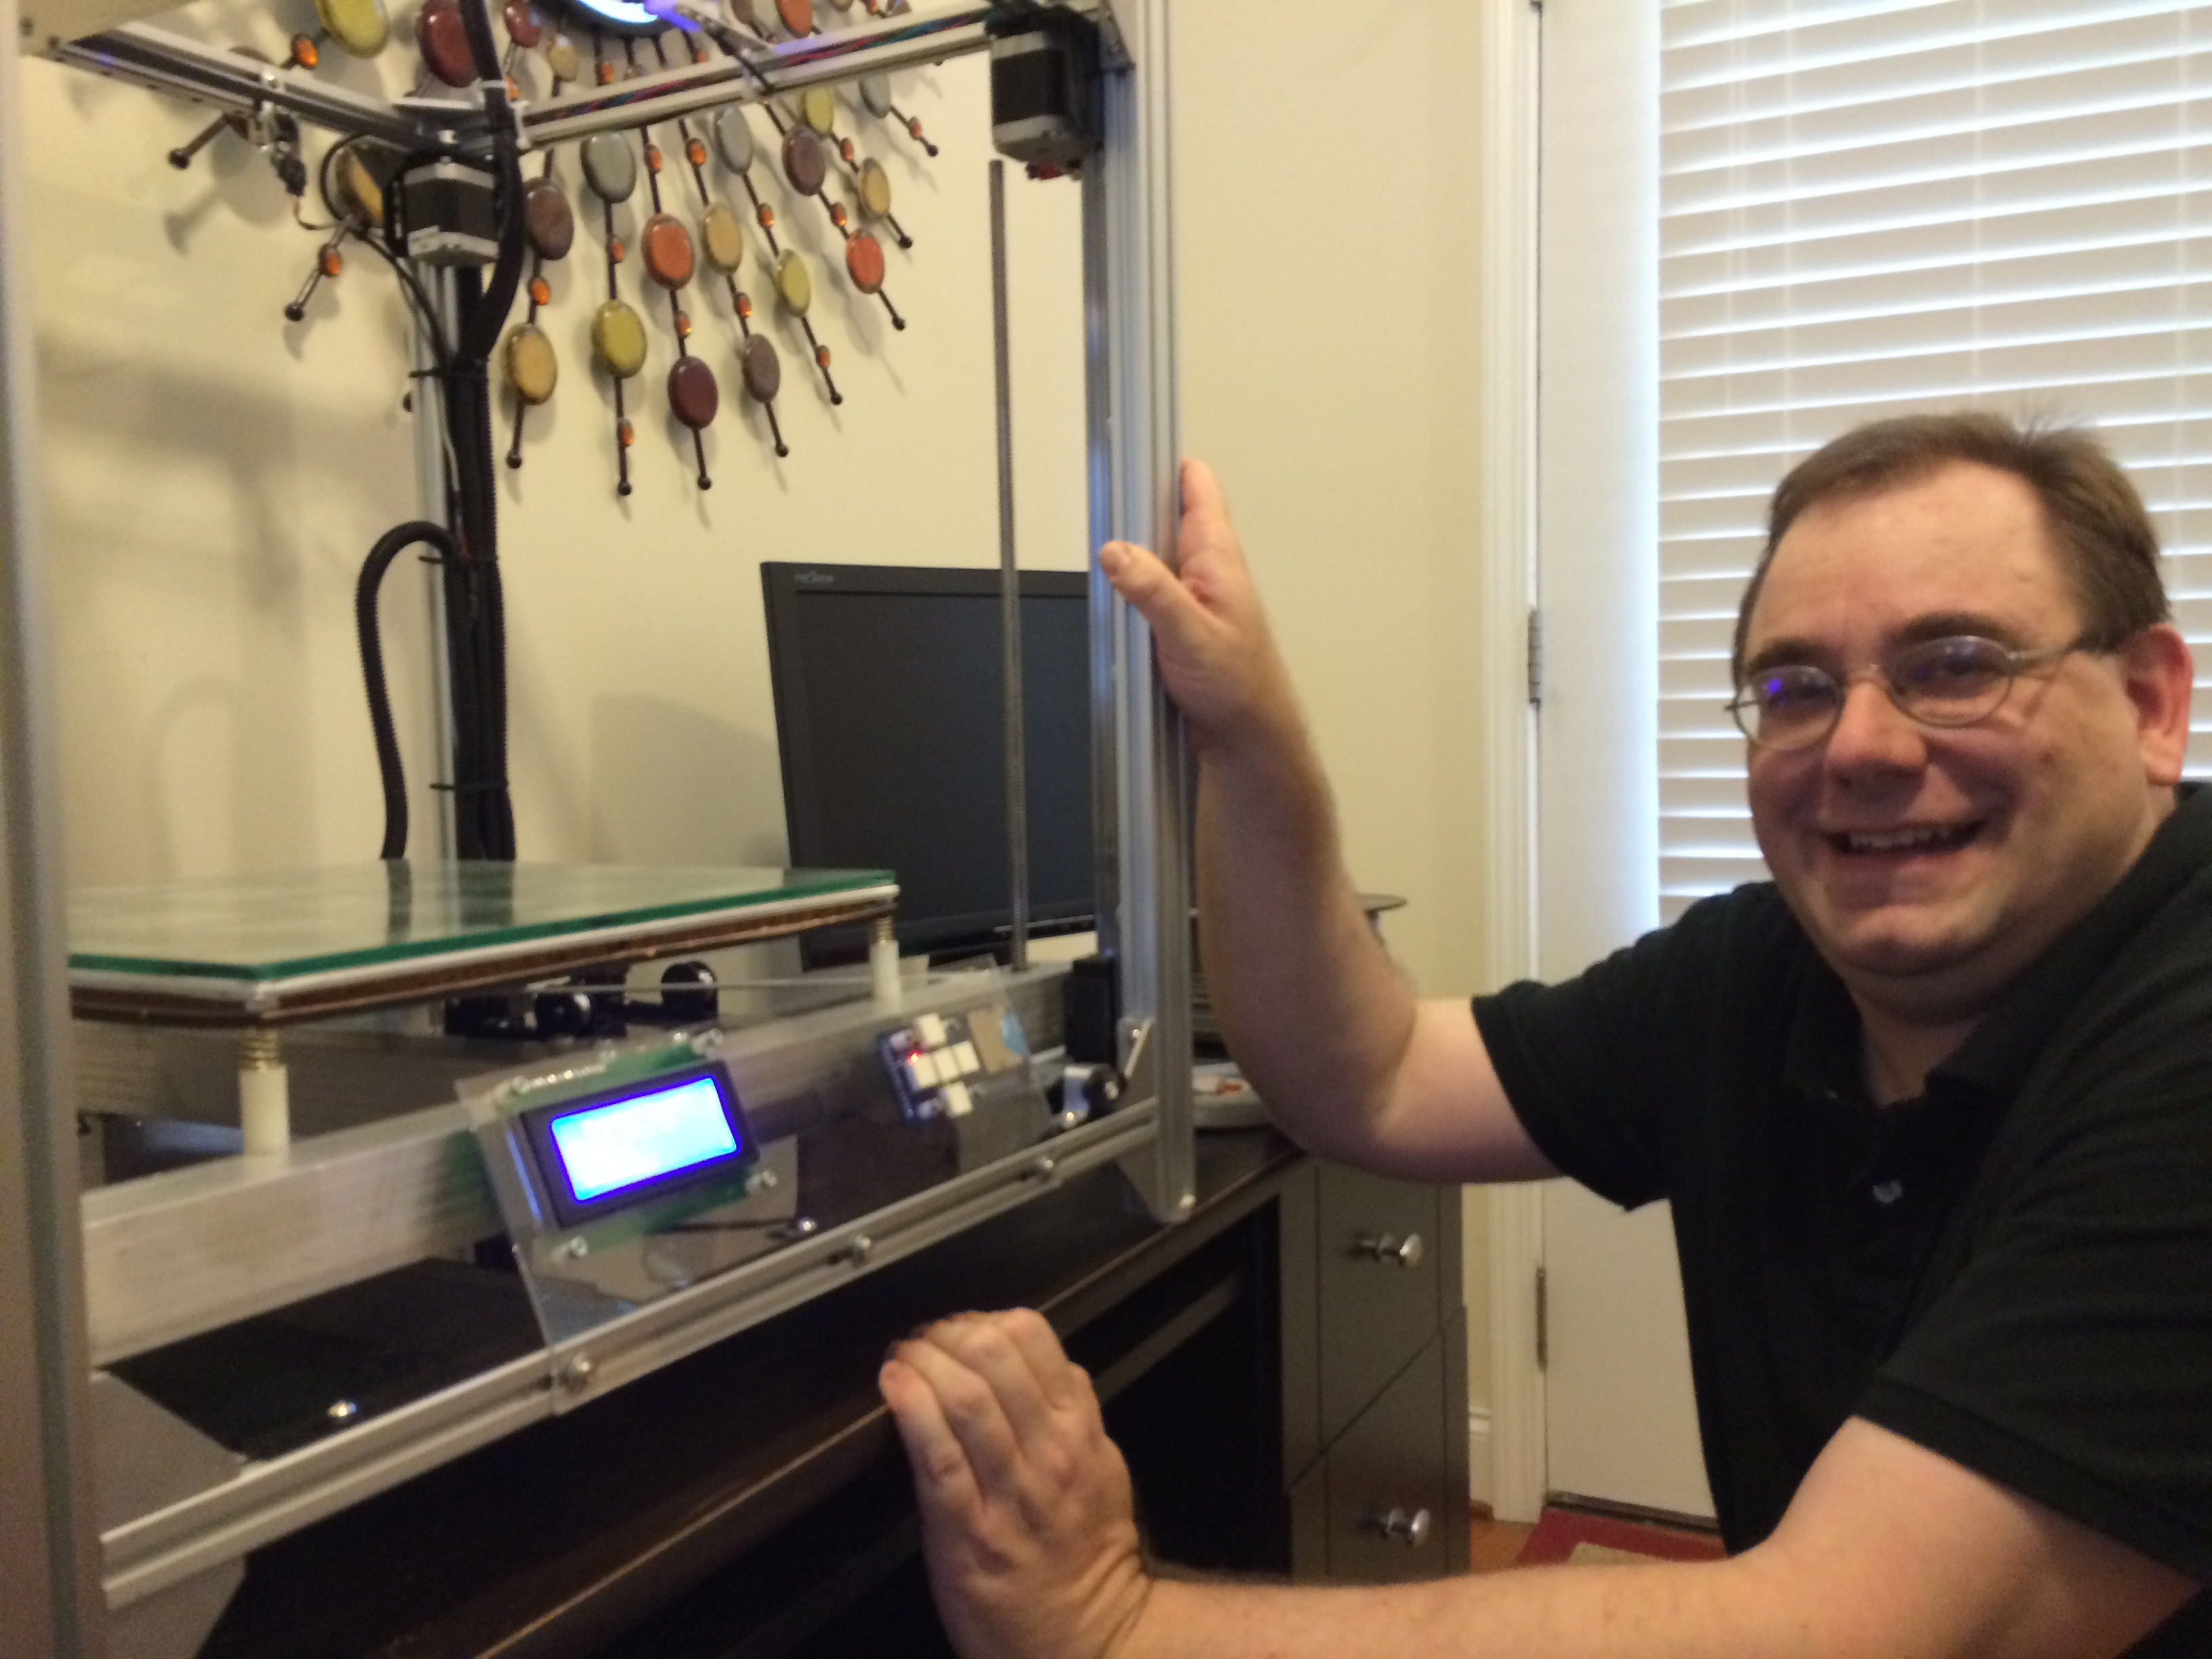 Maker profile the maestro of 3d printer building jetguy for 3d printing kitchen cabinets